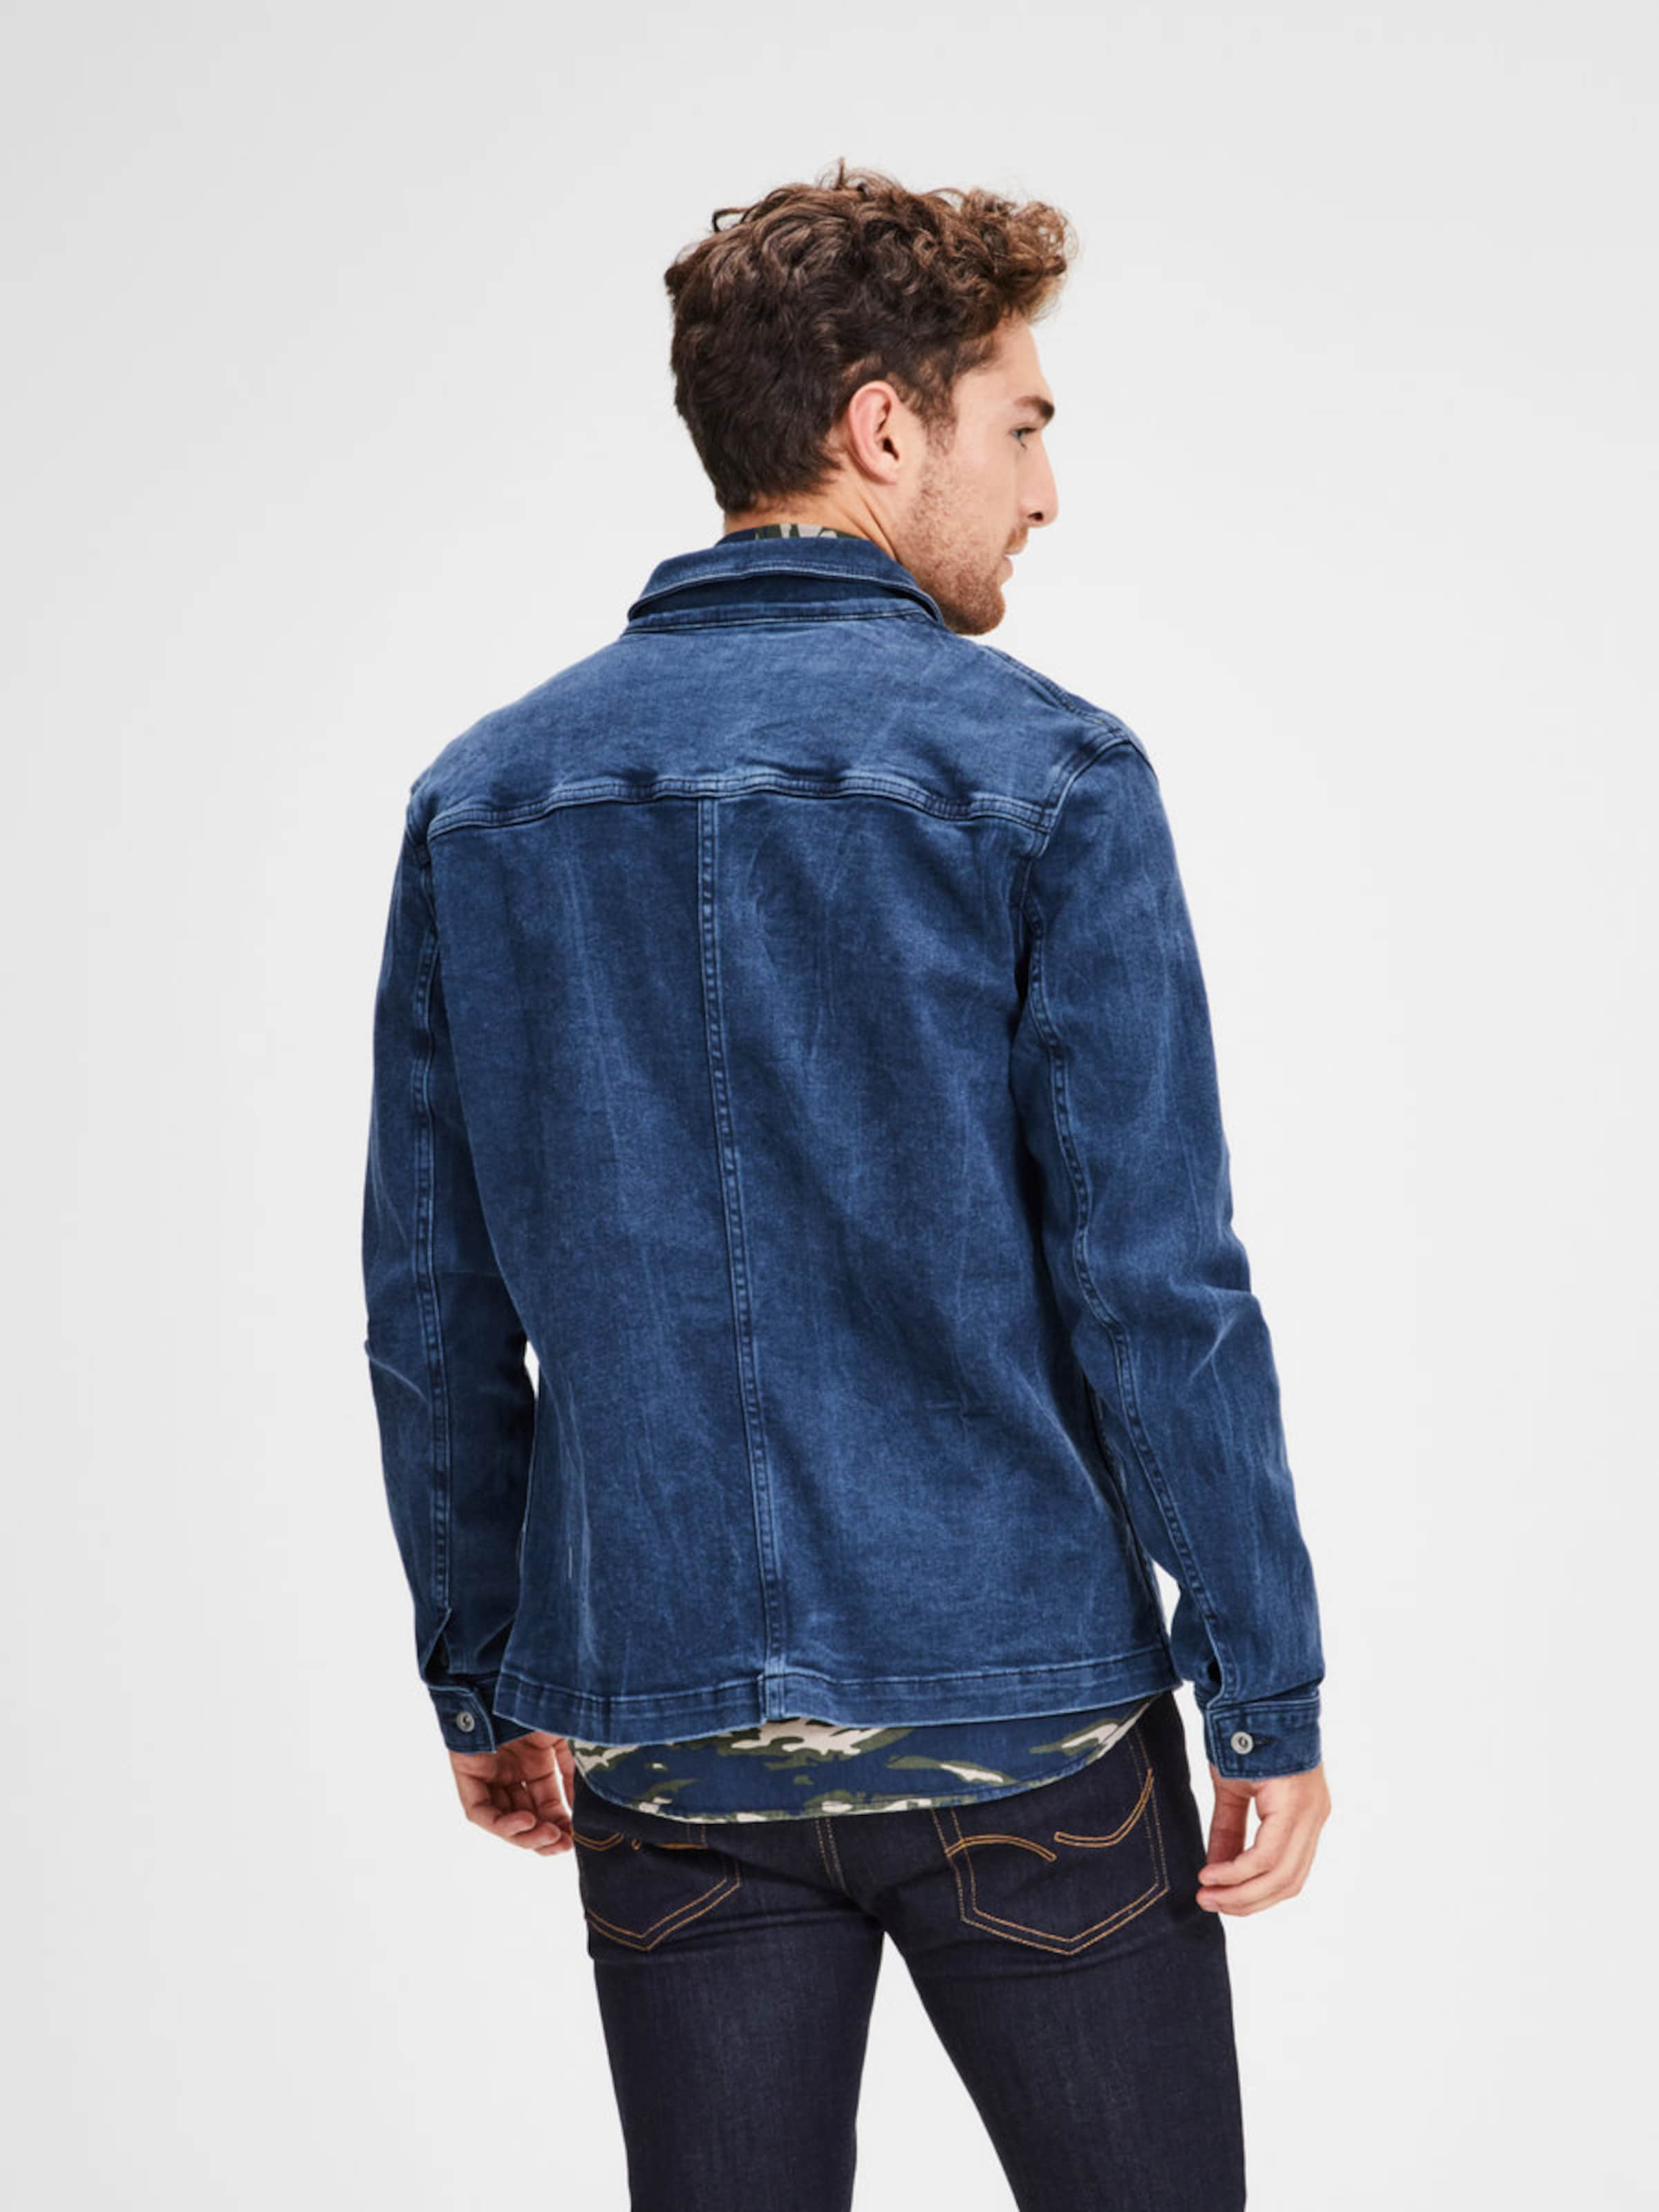 Jackamp; Jeansjacke Blue In Jones Denim rWdxCeQoEB